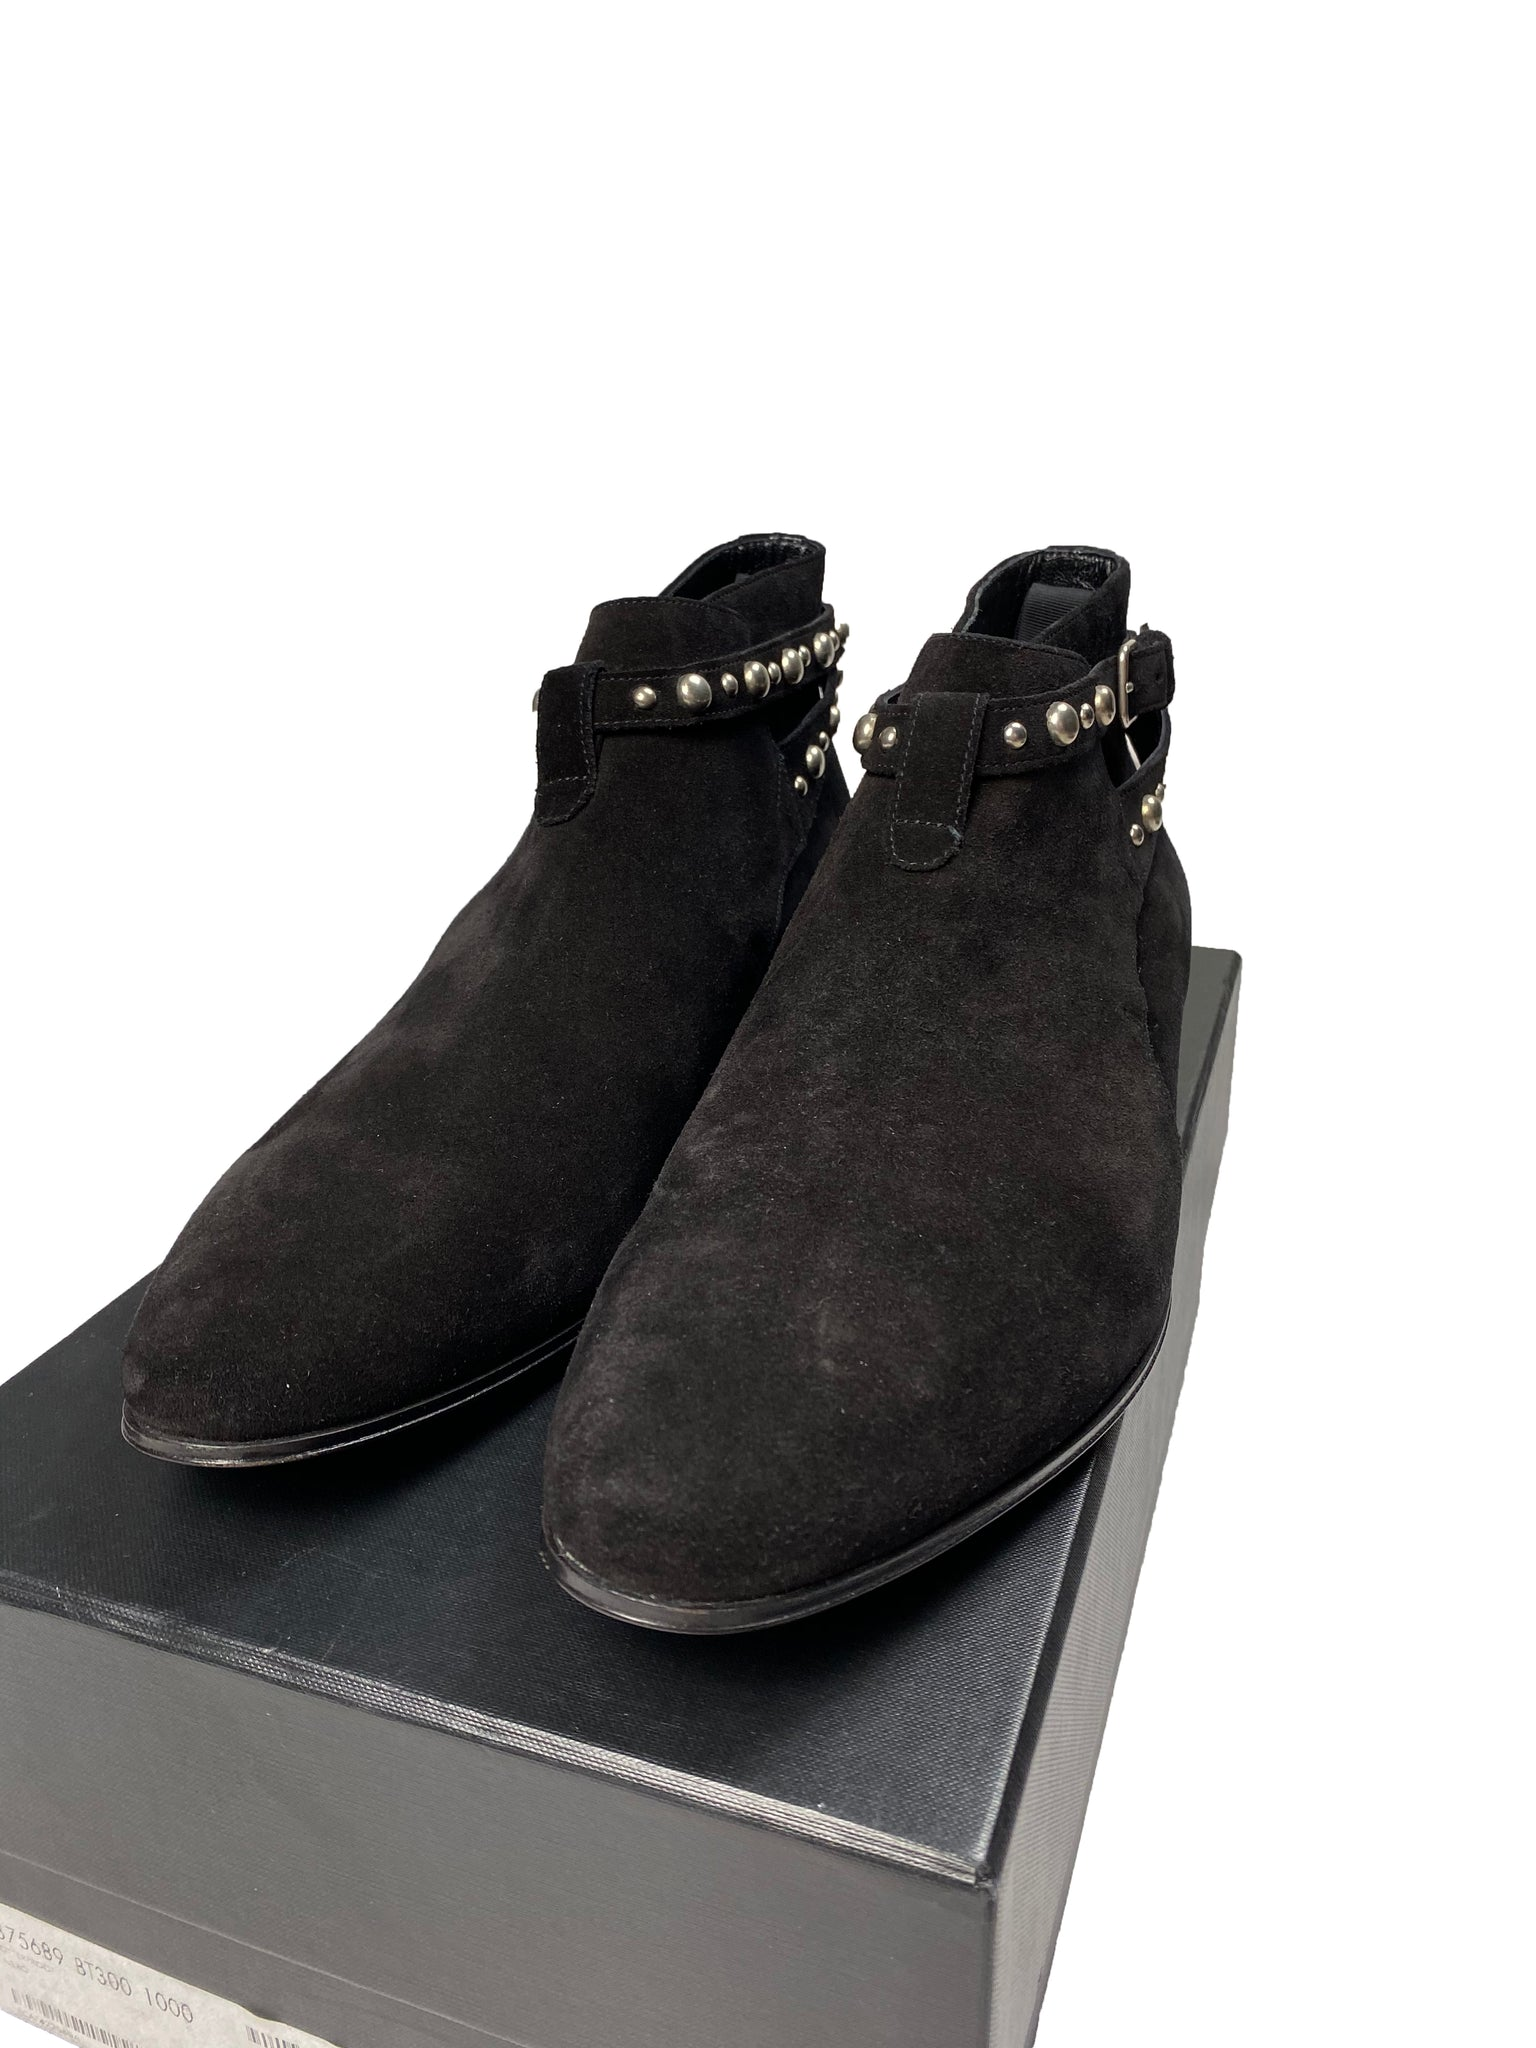 Saint Laurent Boot